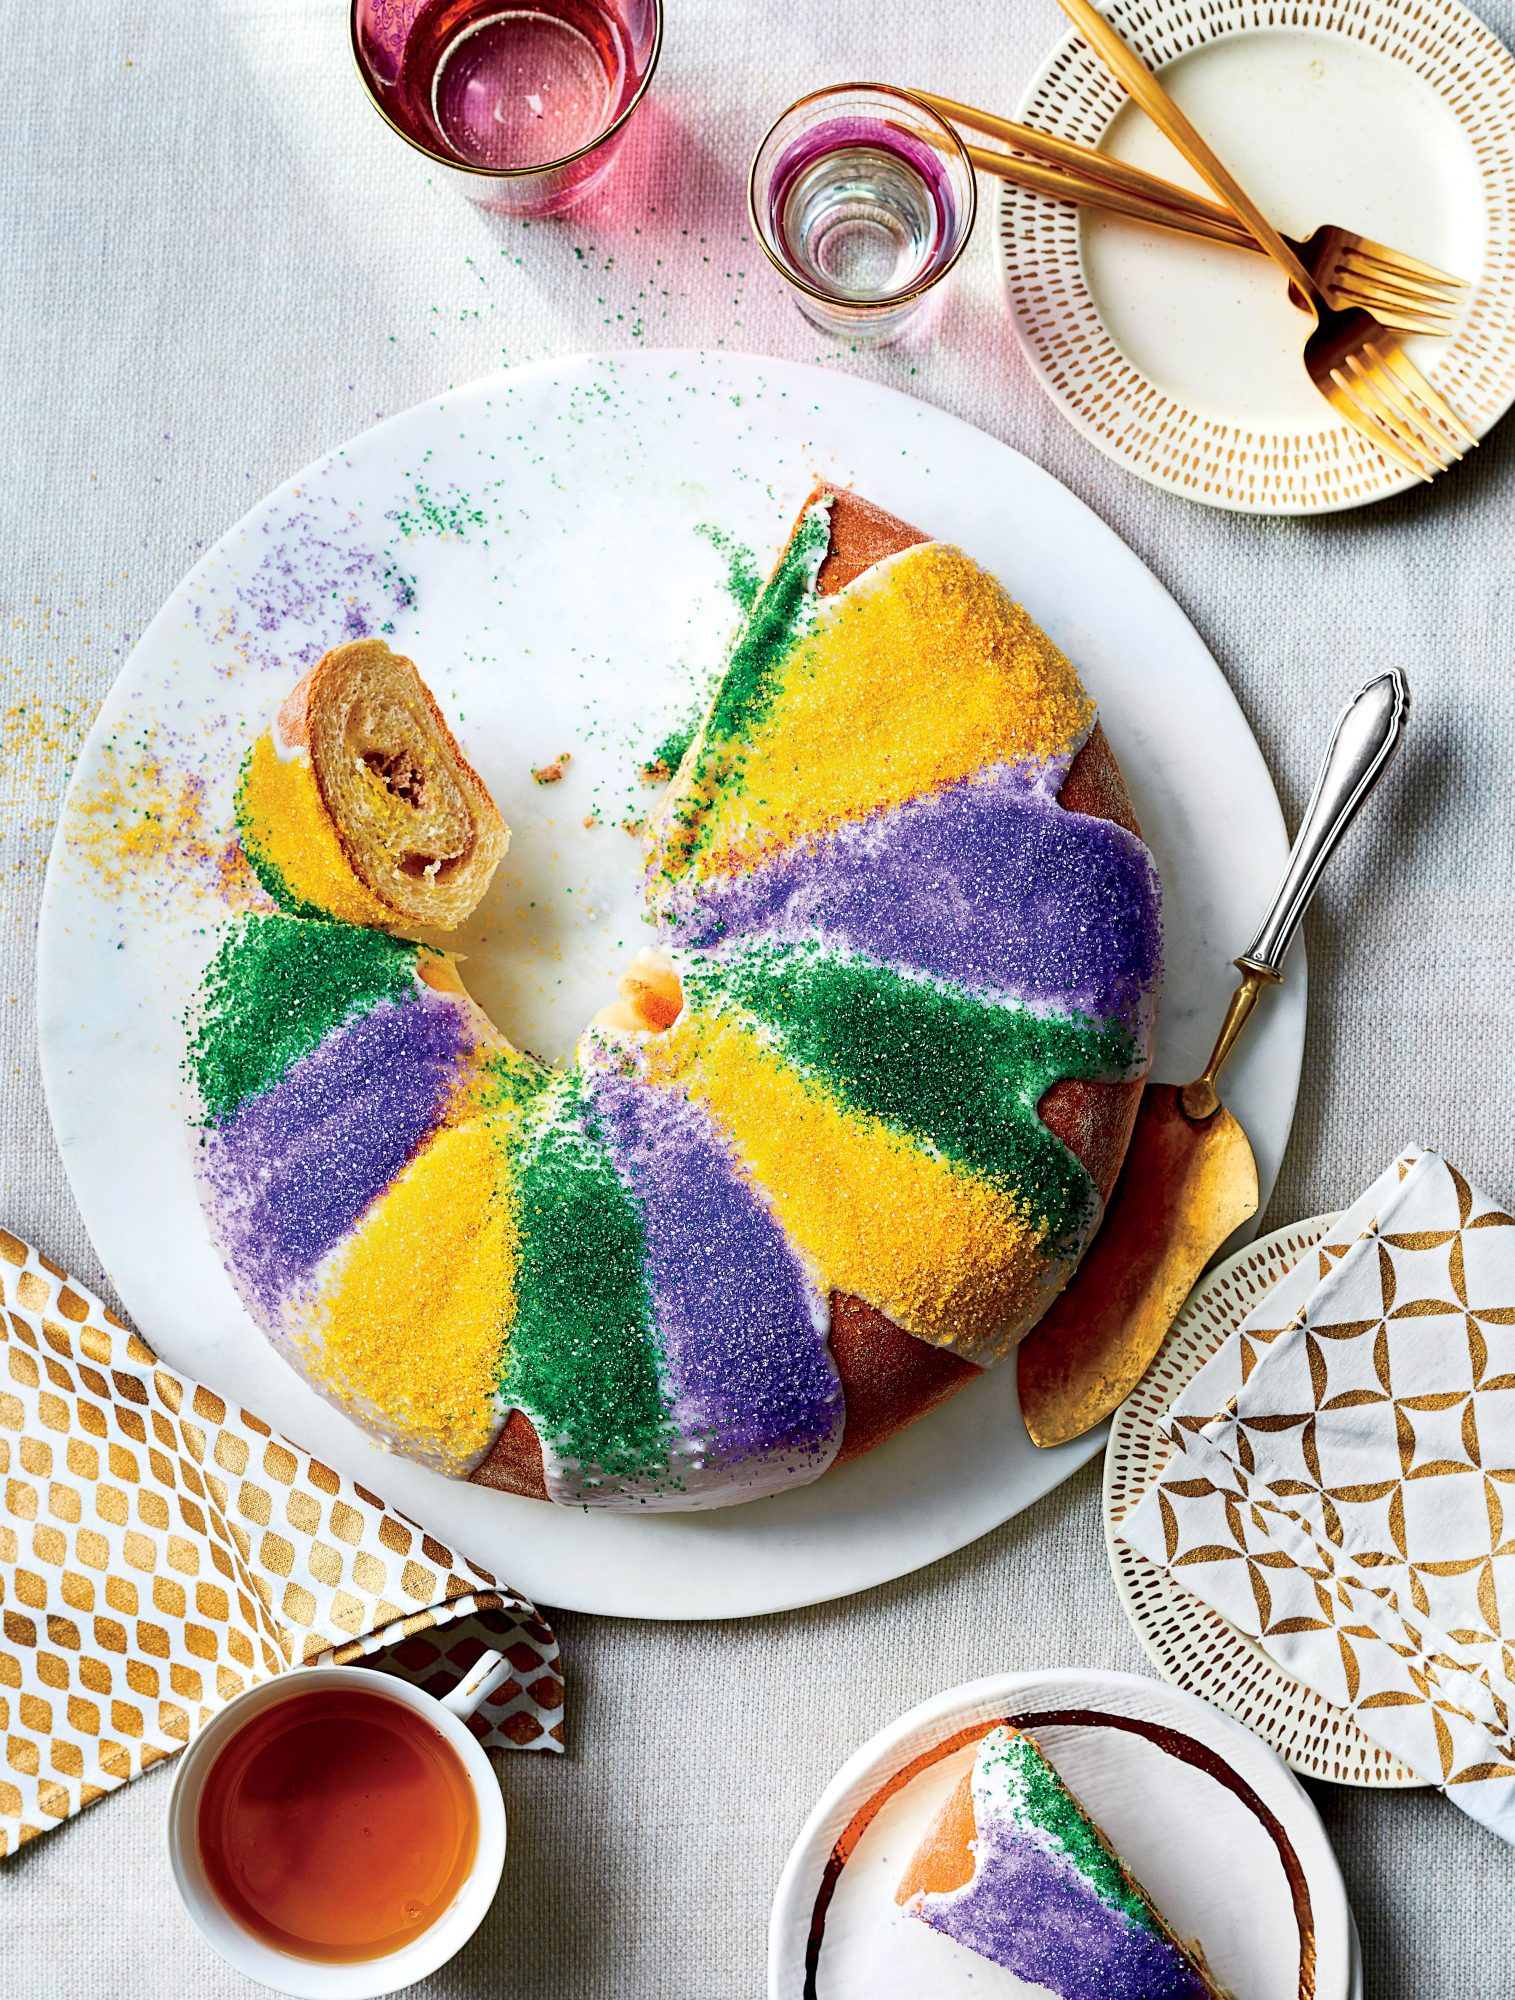 Praline-Cream Cheese King Cakes